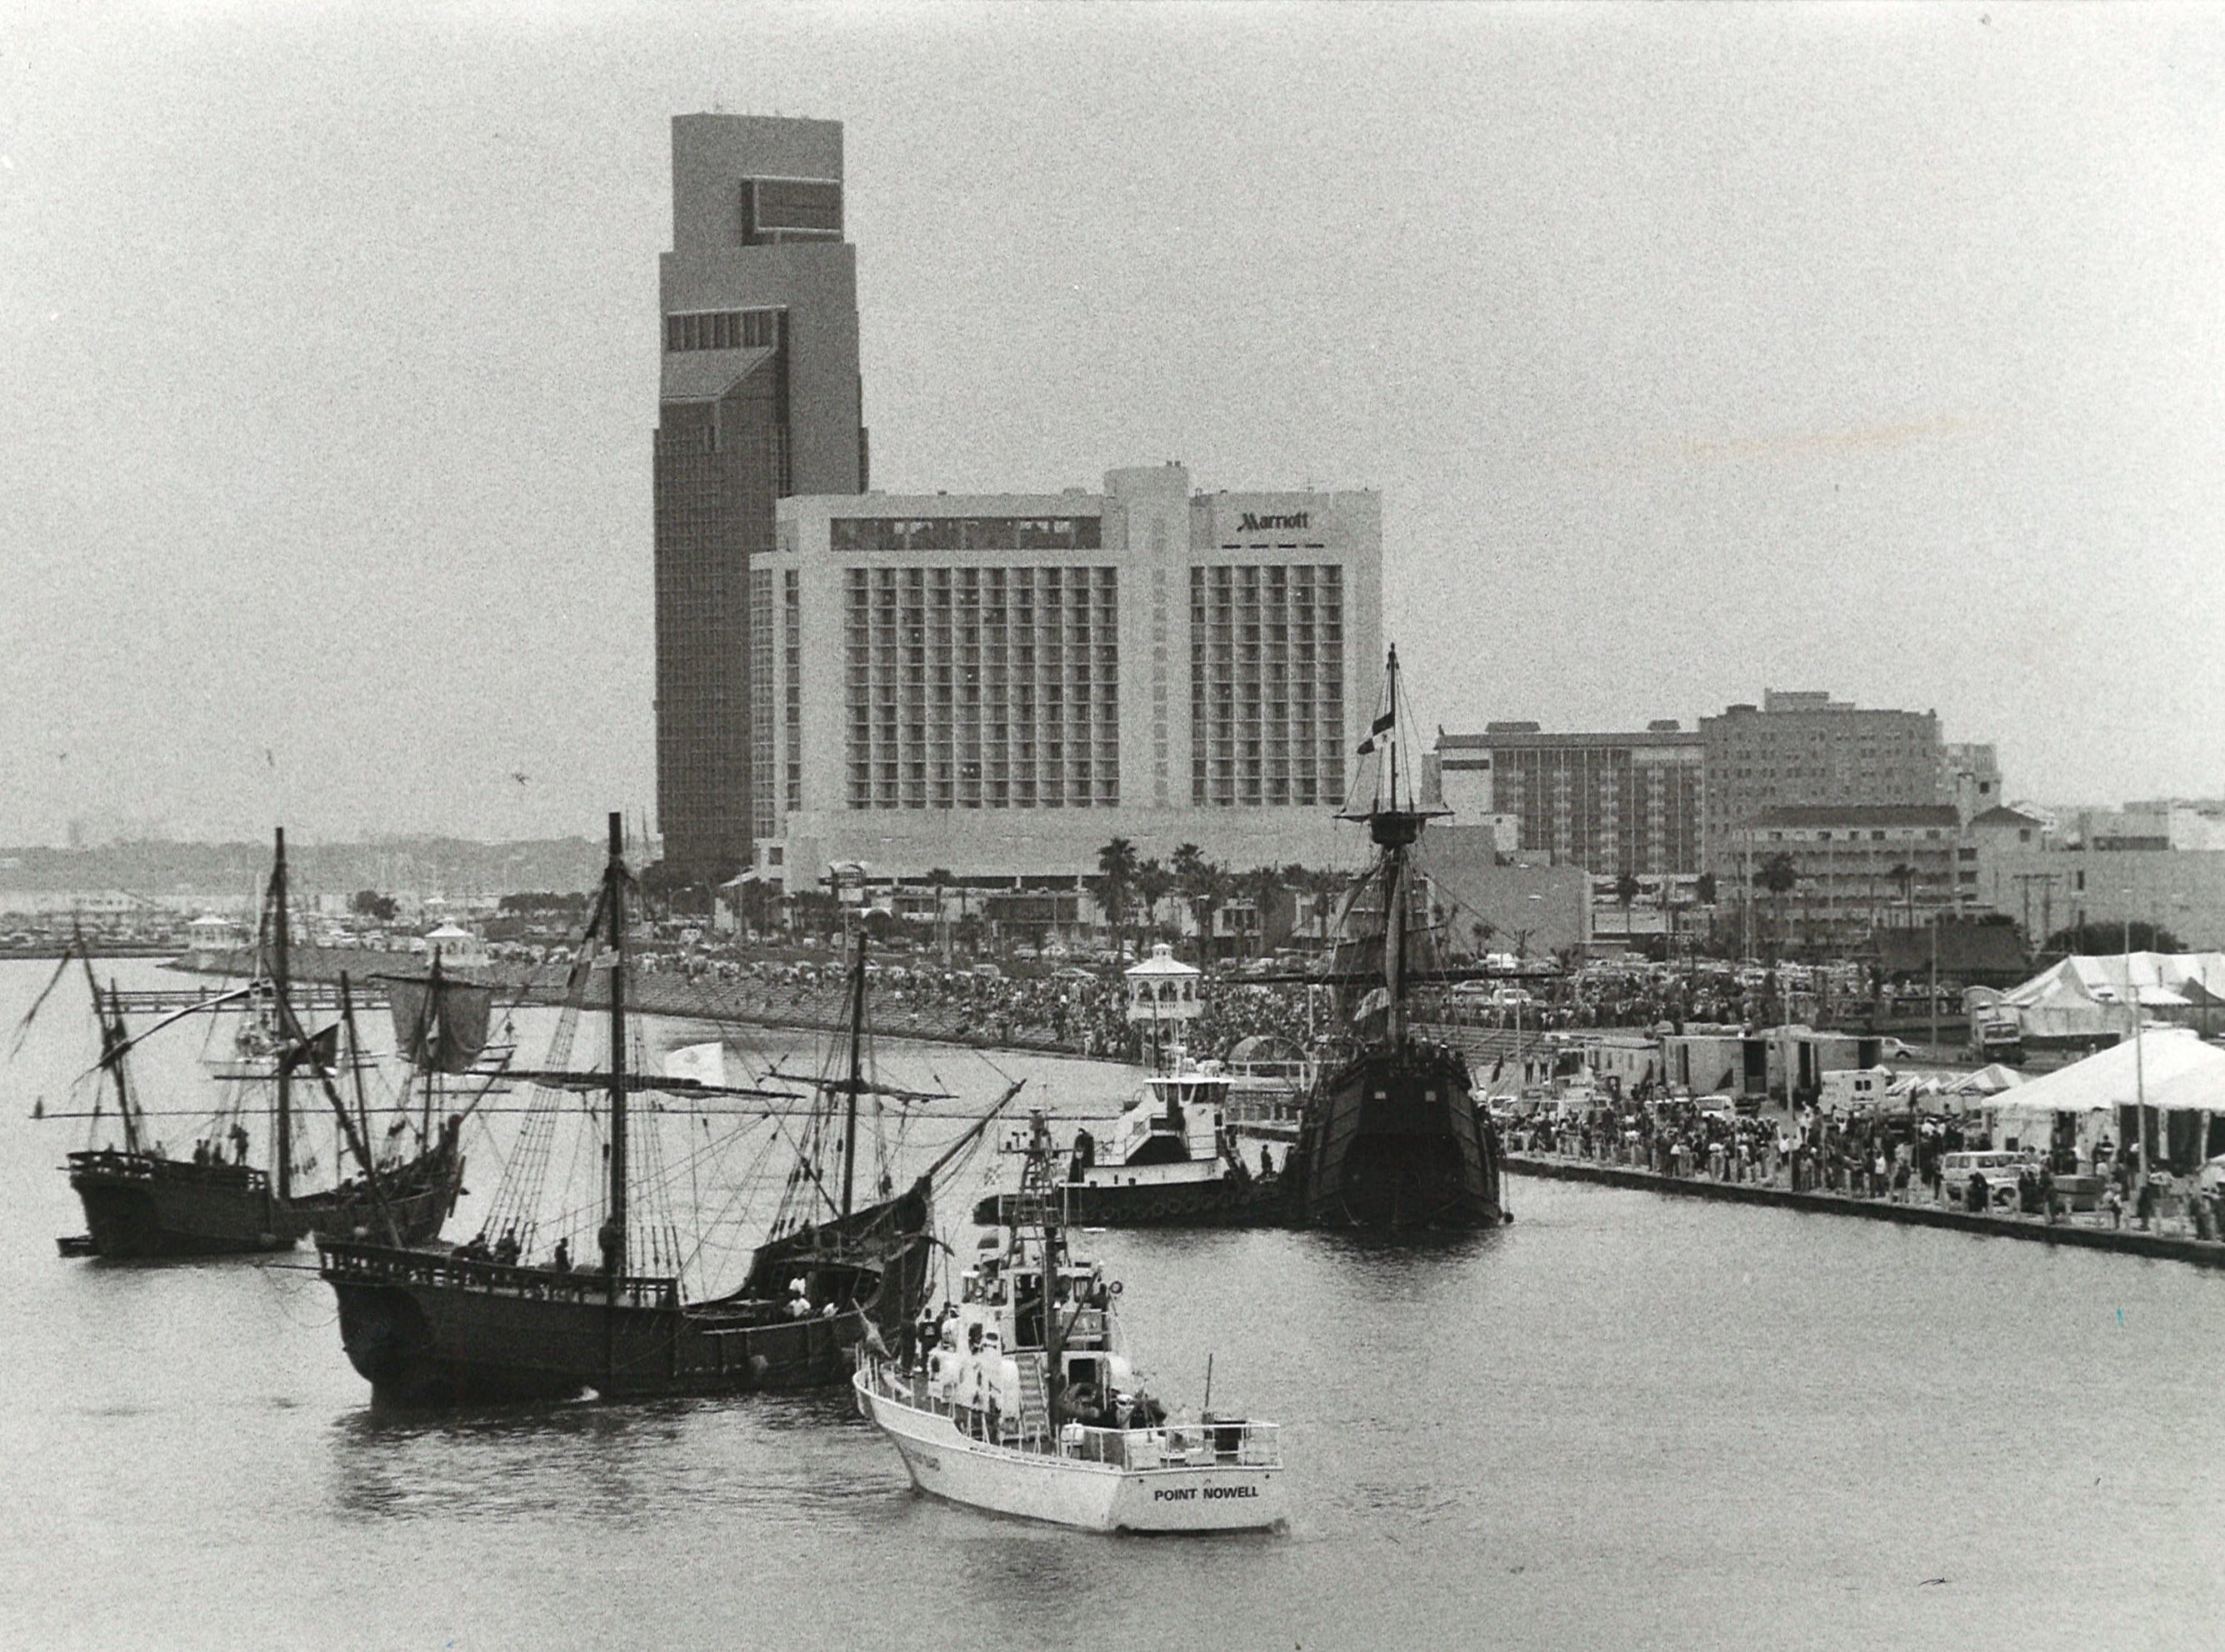 The Columbus ships, known as Los Barcos at the time, sailed into Corpus Christi in March 1992 as part of the 500th anniversary of Columbus' voyage to the Americas.